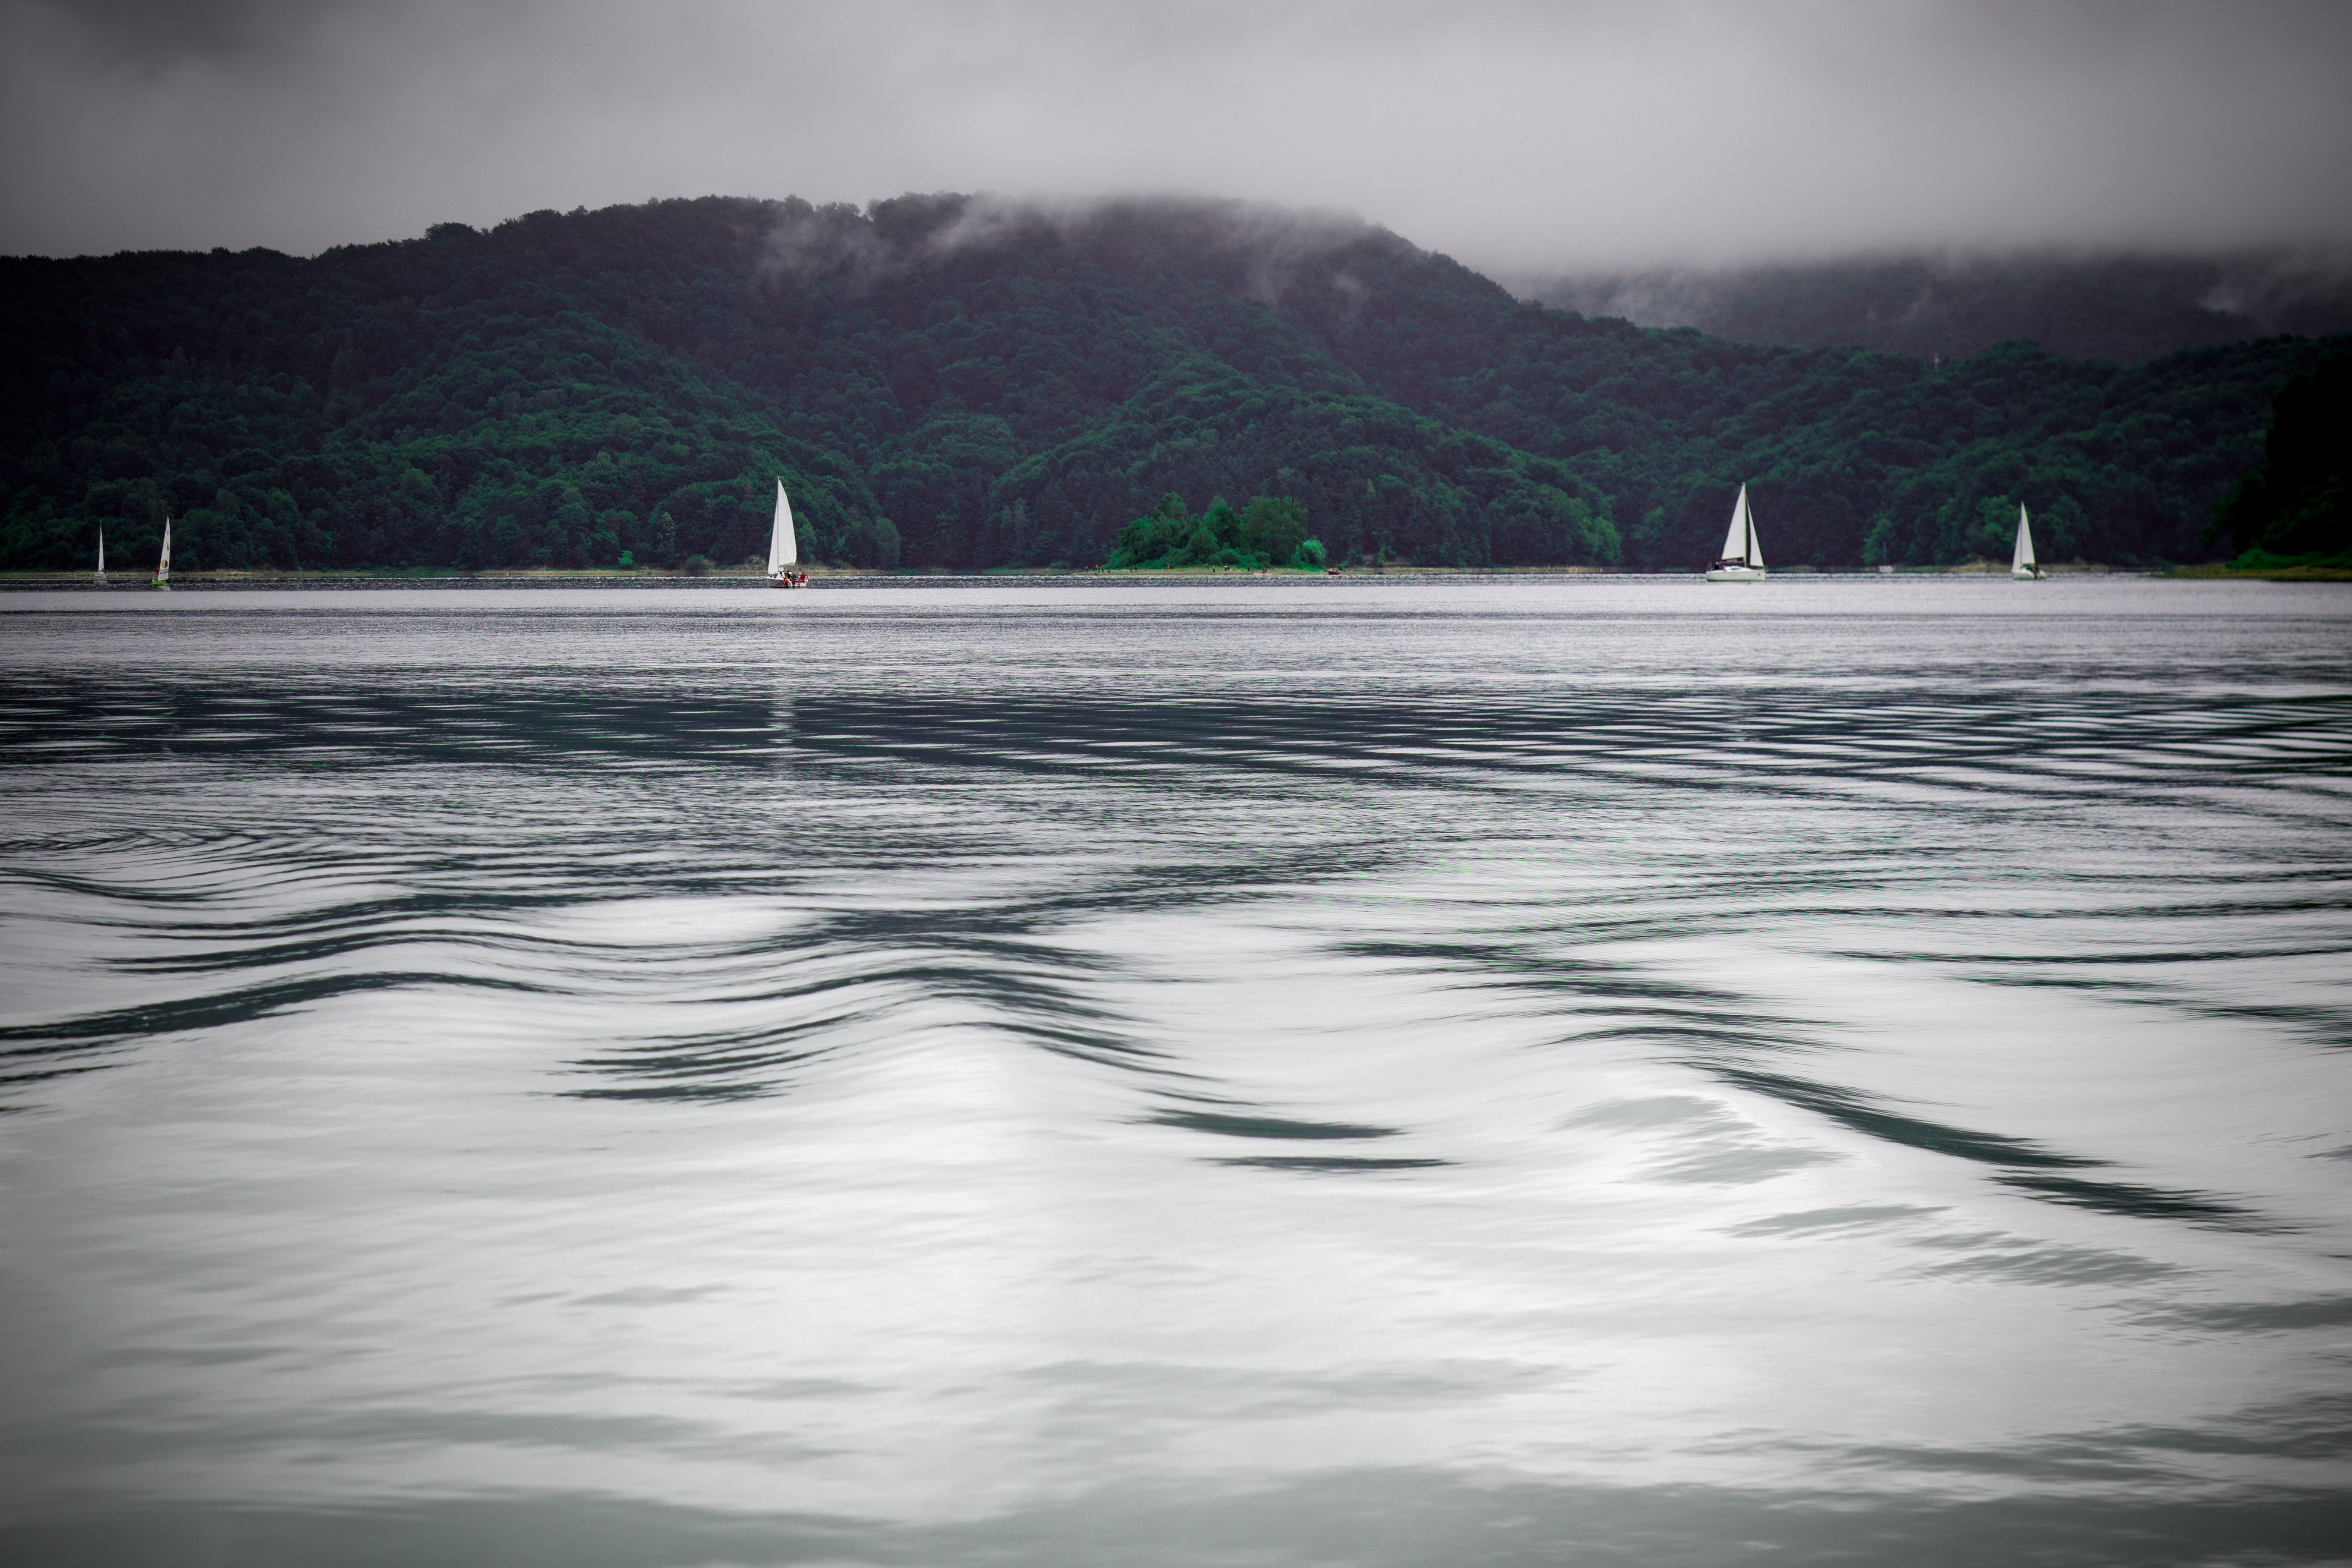 green mountains near sailboats on ocean